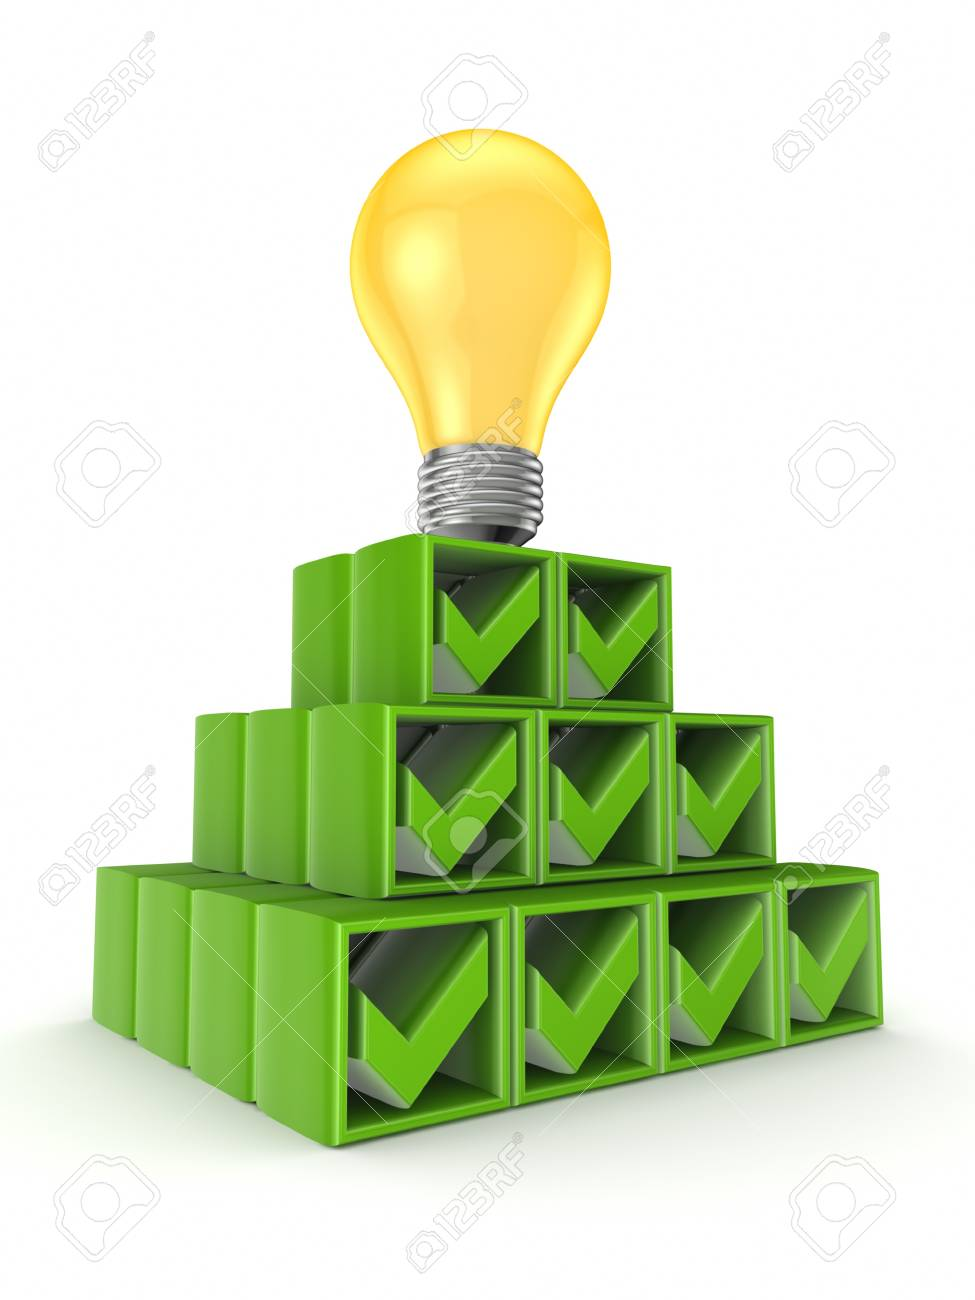 Pyramid made of tick marks and yellow lamp Stock Photo - 15534144